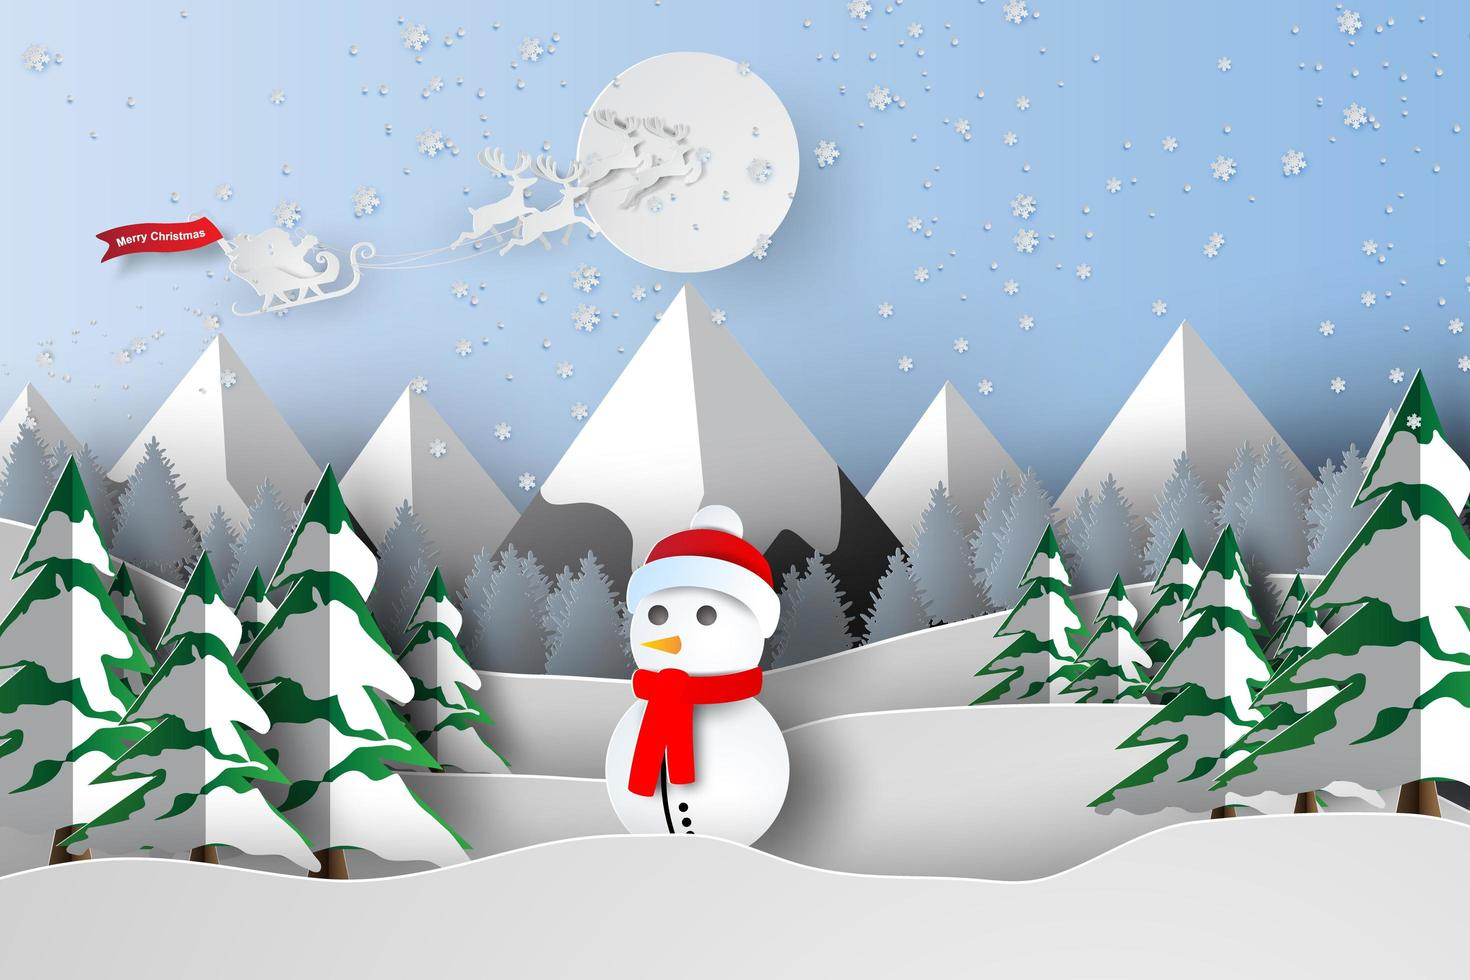 Paper Art of Merry Christmas with Snowman vector